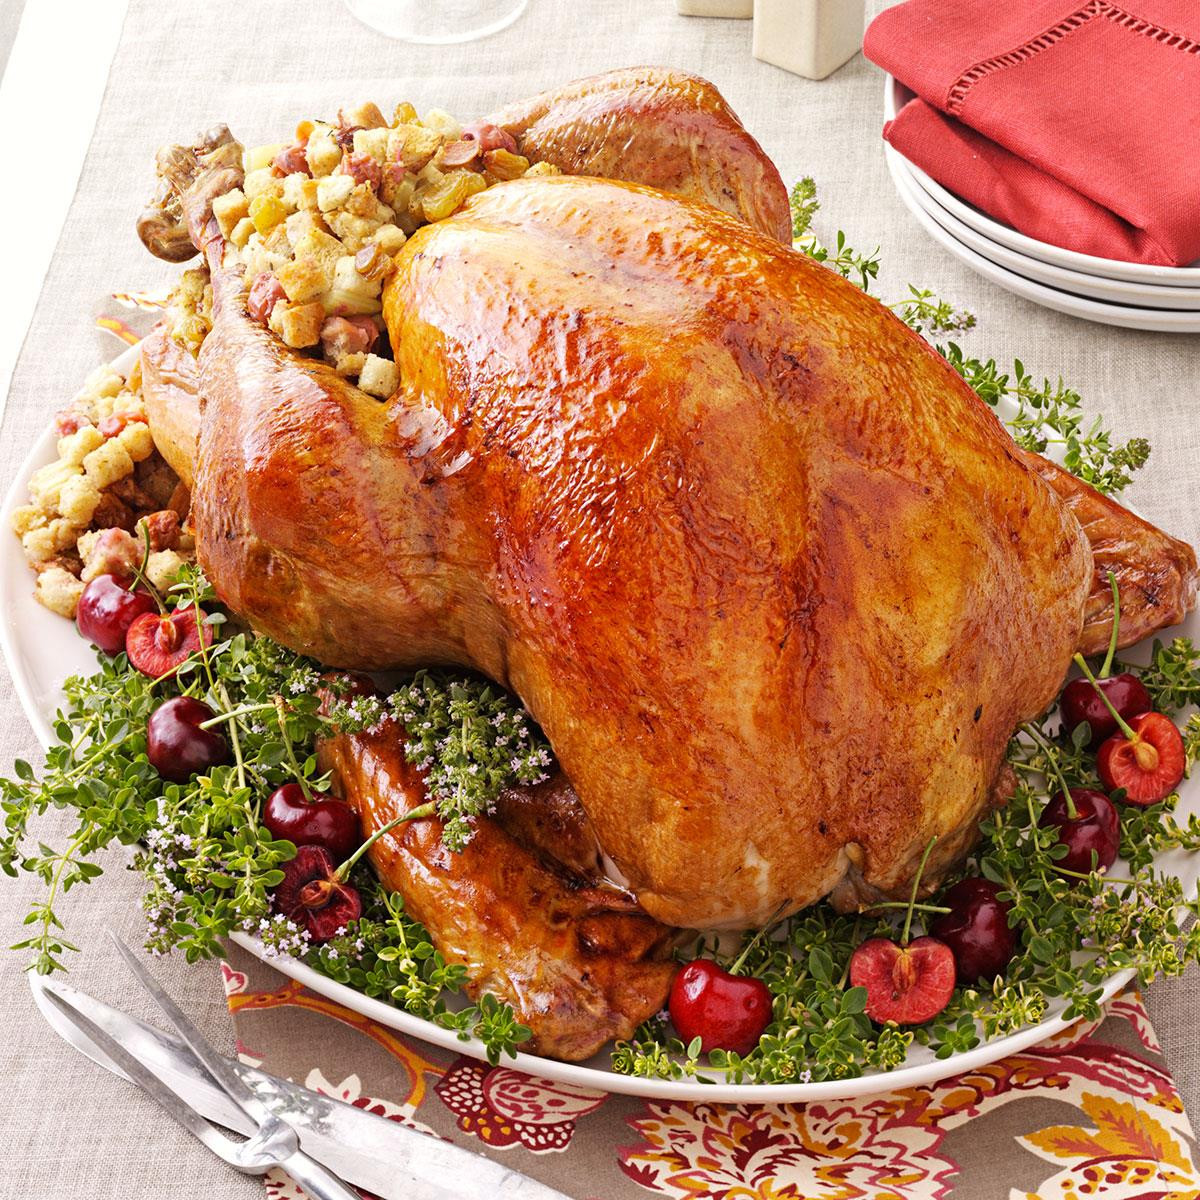 Turkey Stuffing Recipes For Thanksgiving  Turkey with Cherry Stuffing Recipe